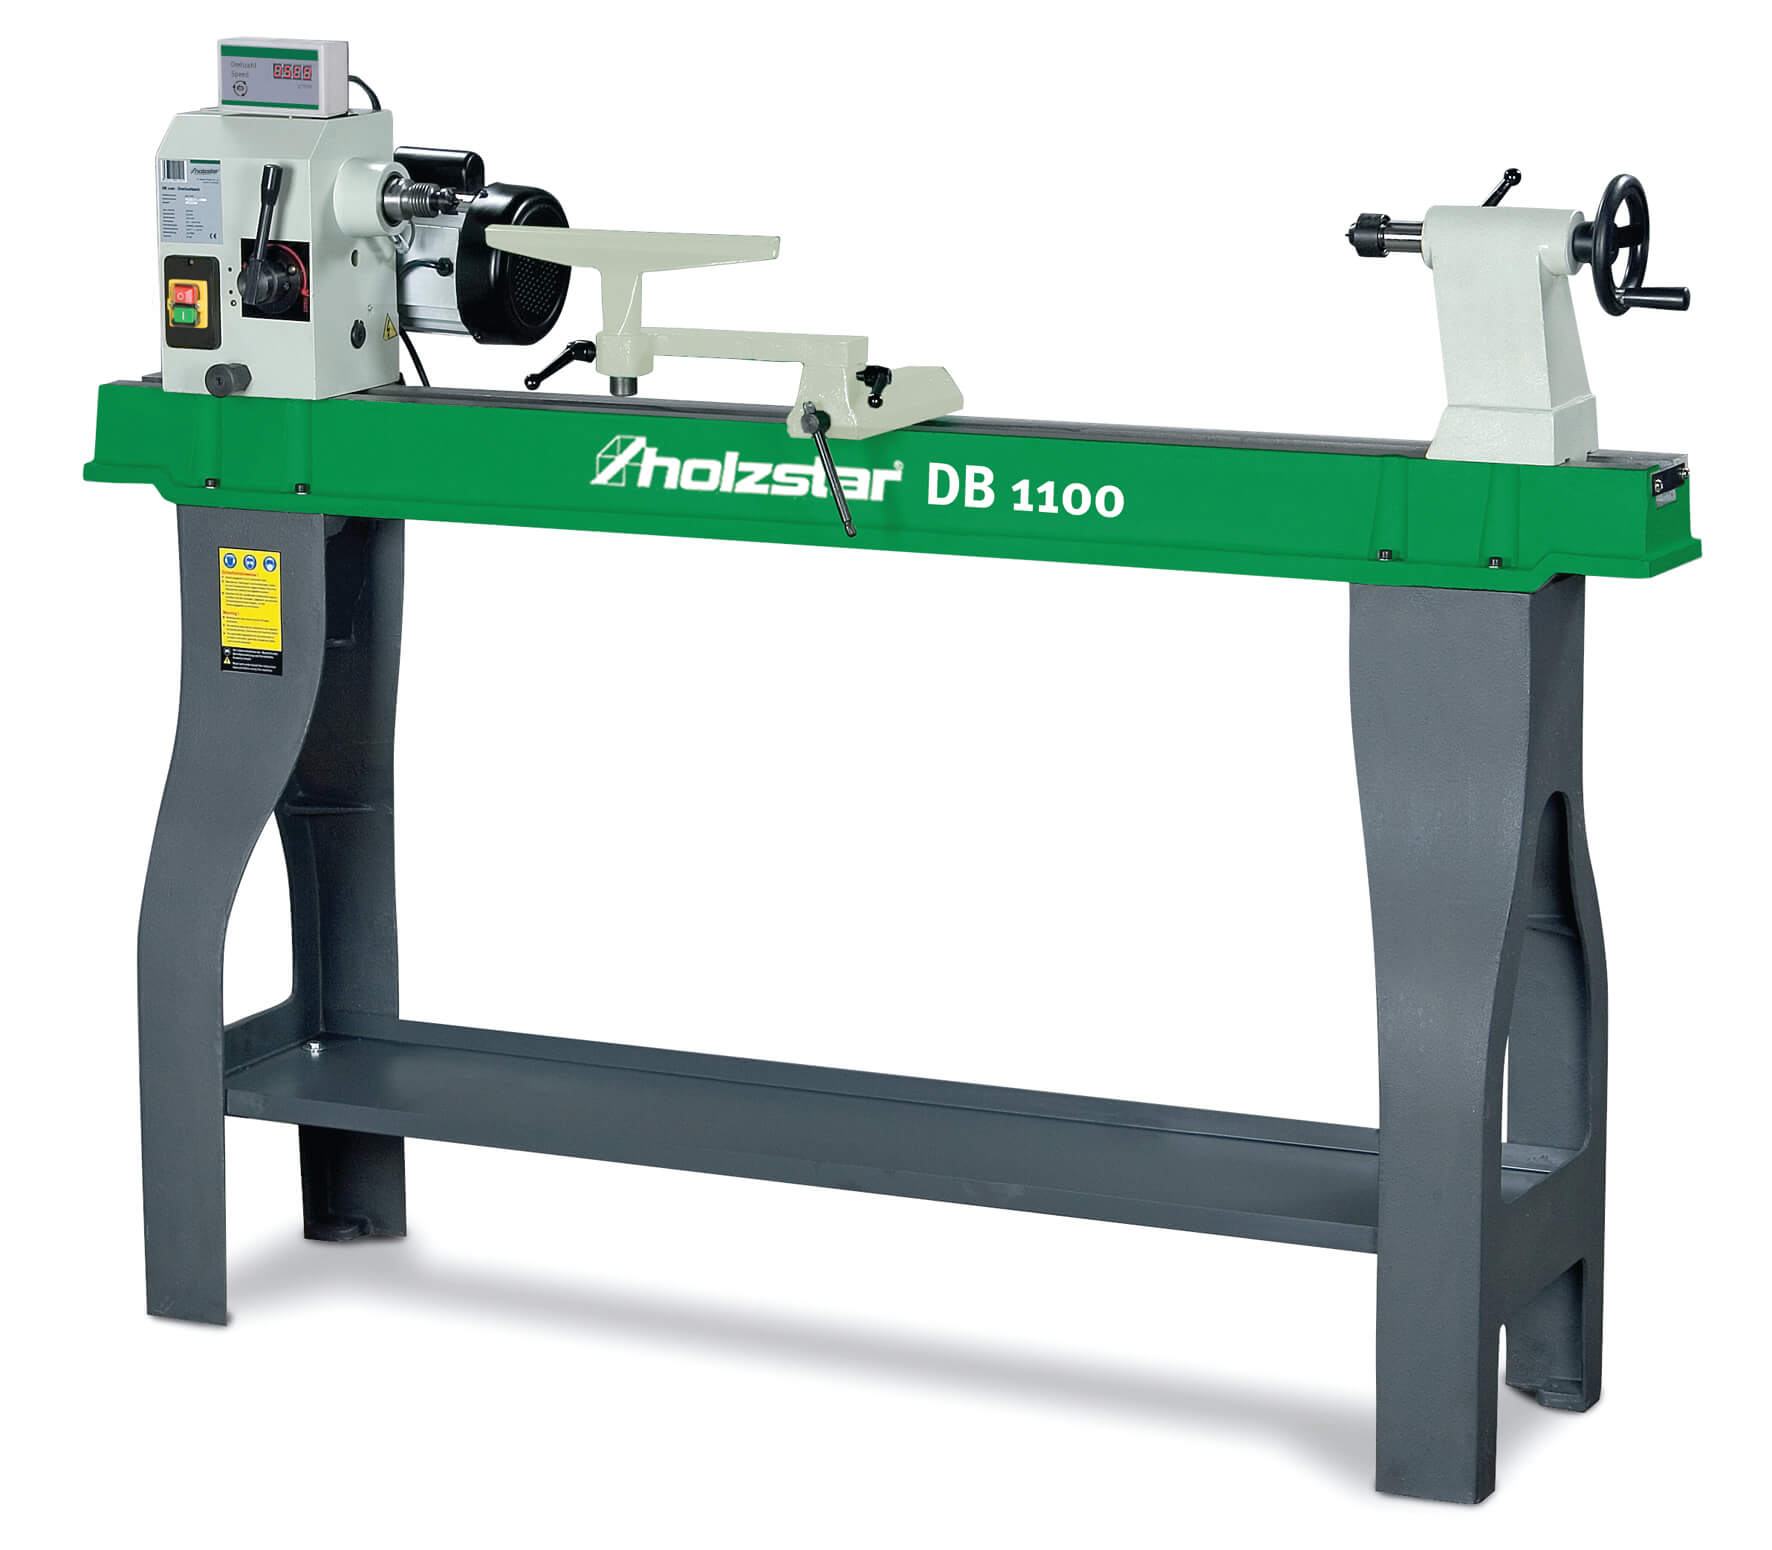 Holzstar Woodturning Lathe DB 1100